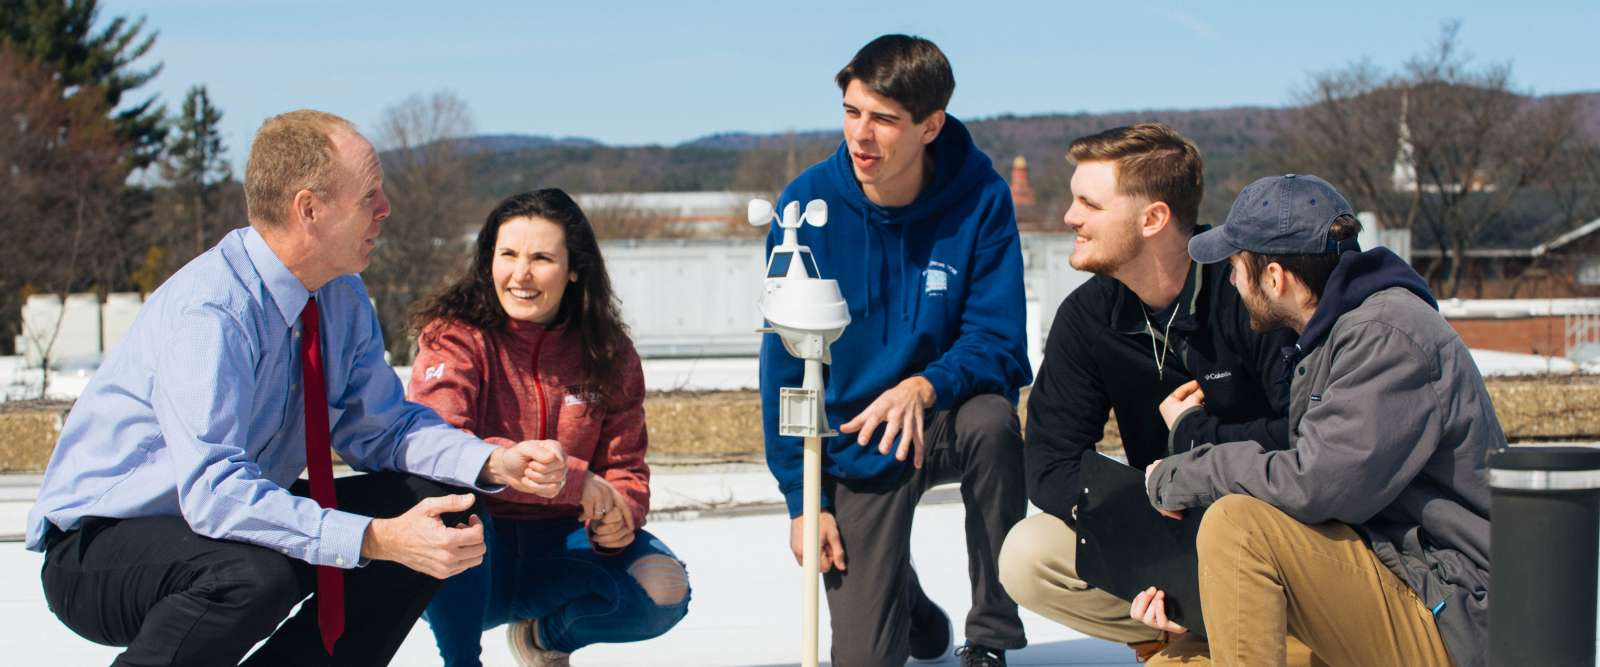 Professor Chris Cusack, left, and his students gather around a weather station on the roof of the Science Center.